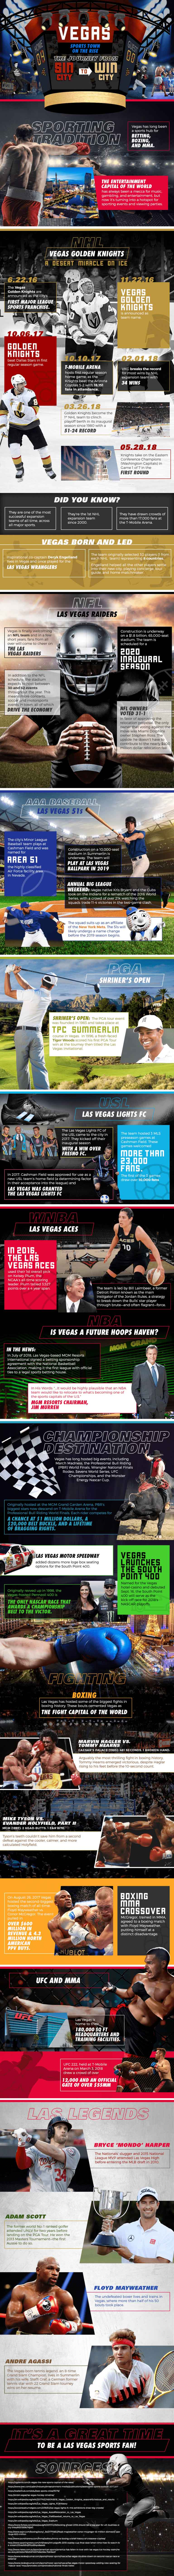 Las Vegas: Sports Town On the Rise